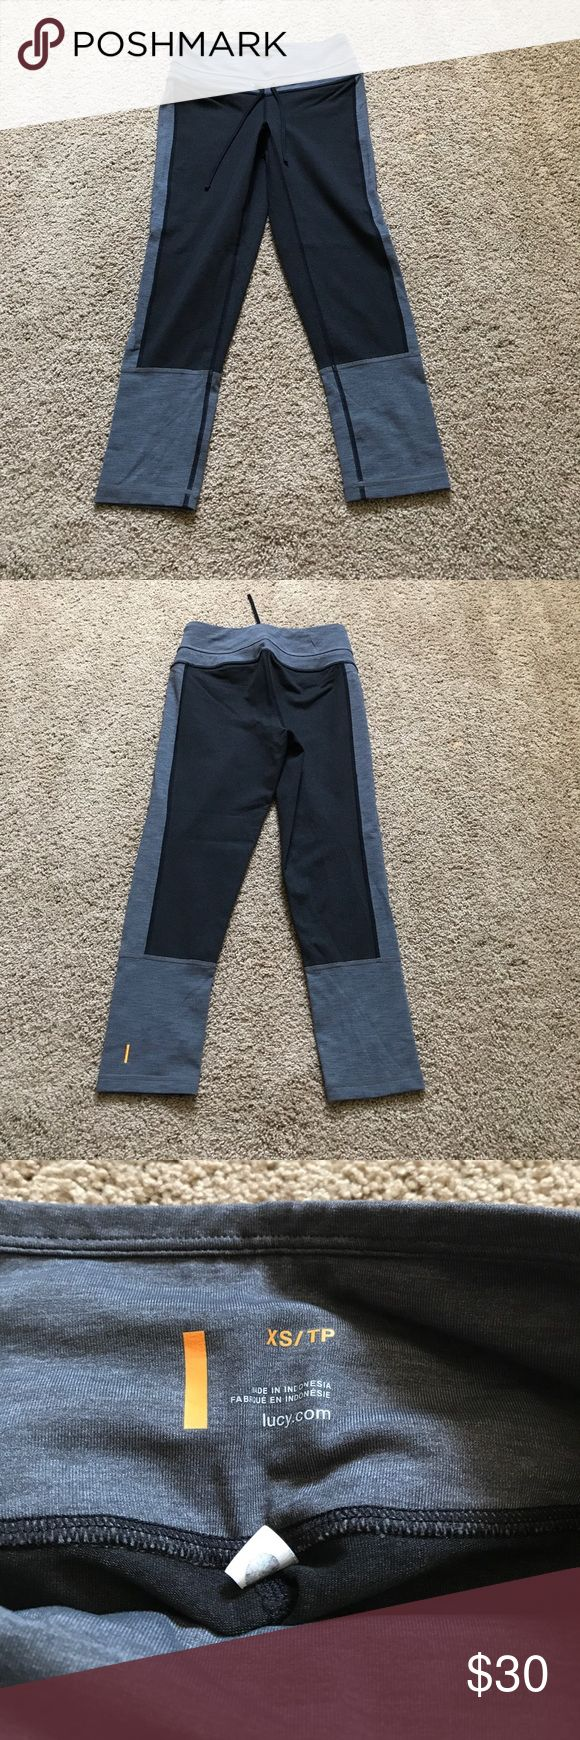 Lucy x training capri - BNWOT! Very comfy and flattering. Gray and black/gray in color. Lucy Pants Capris